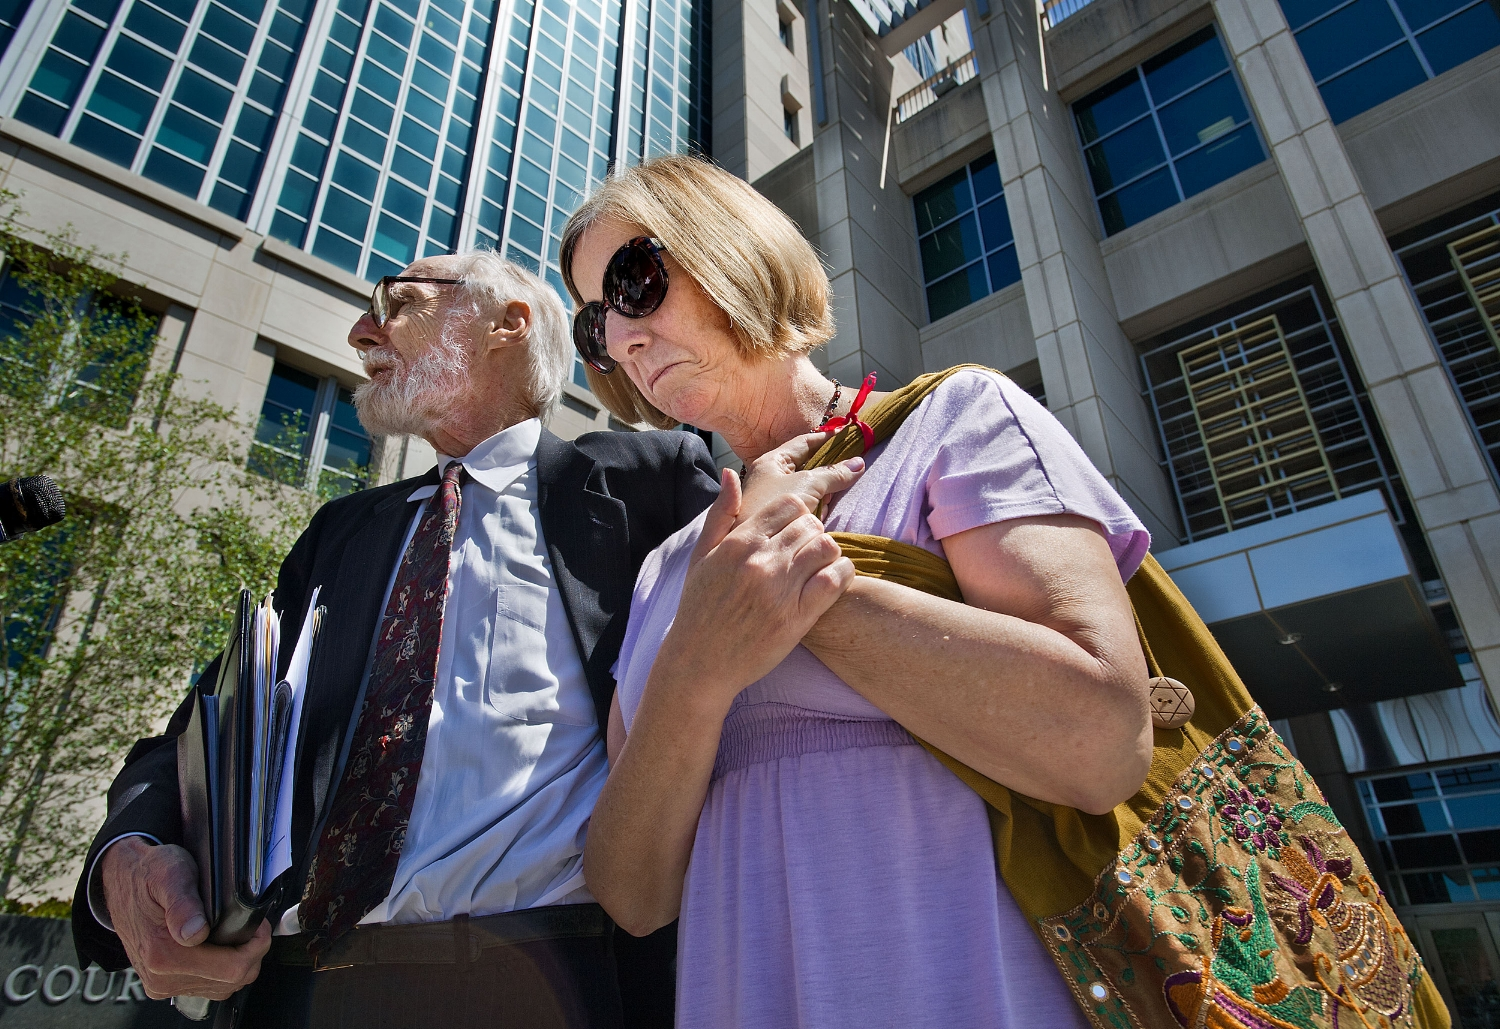 Anti-war activist Cindy Sheehan, right, with her attorney Dennis Cunningham outside the Federal Courthouse in Sacramento on Thursday, April 19, 2012.